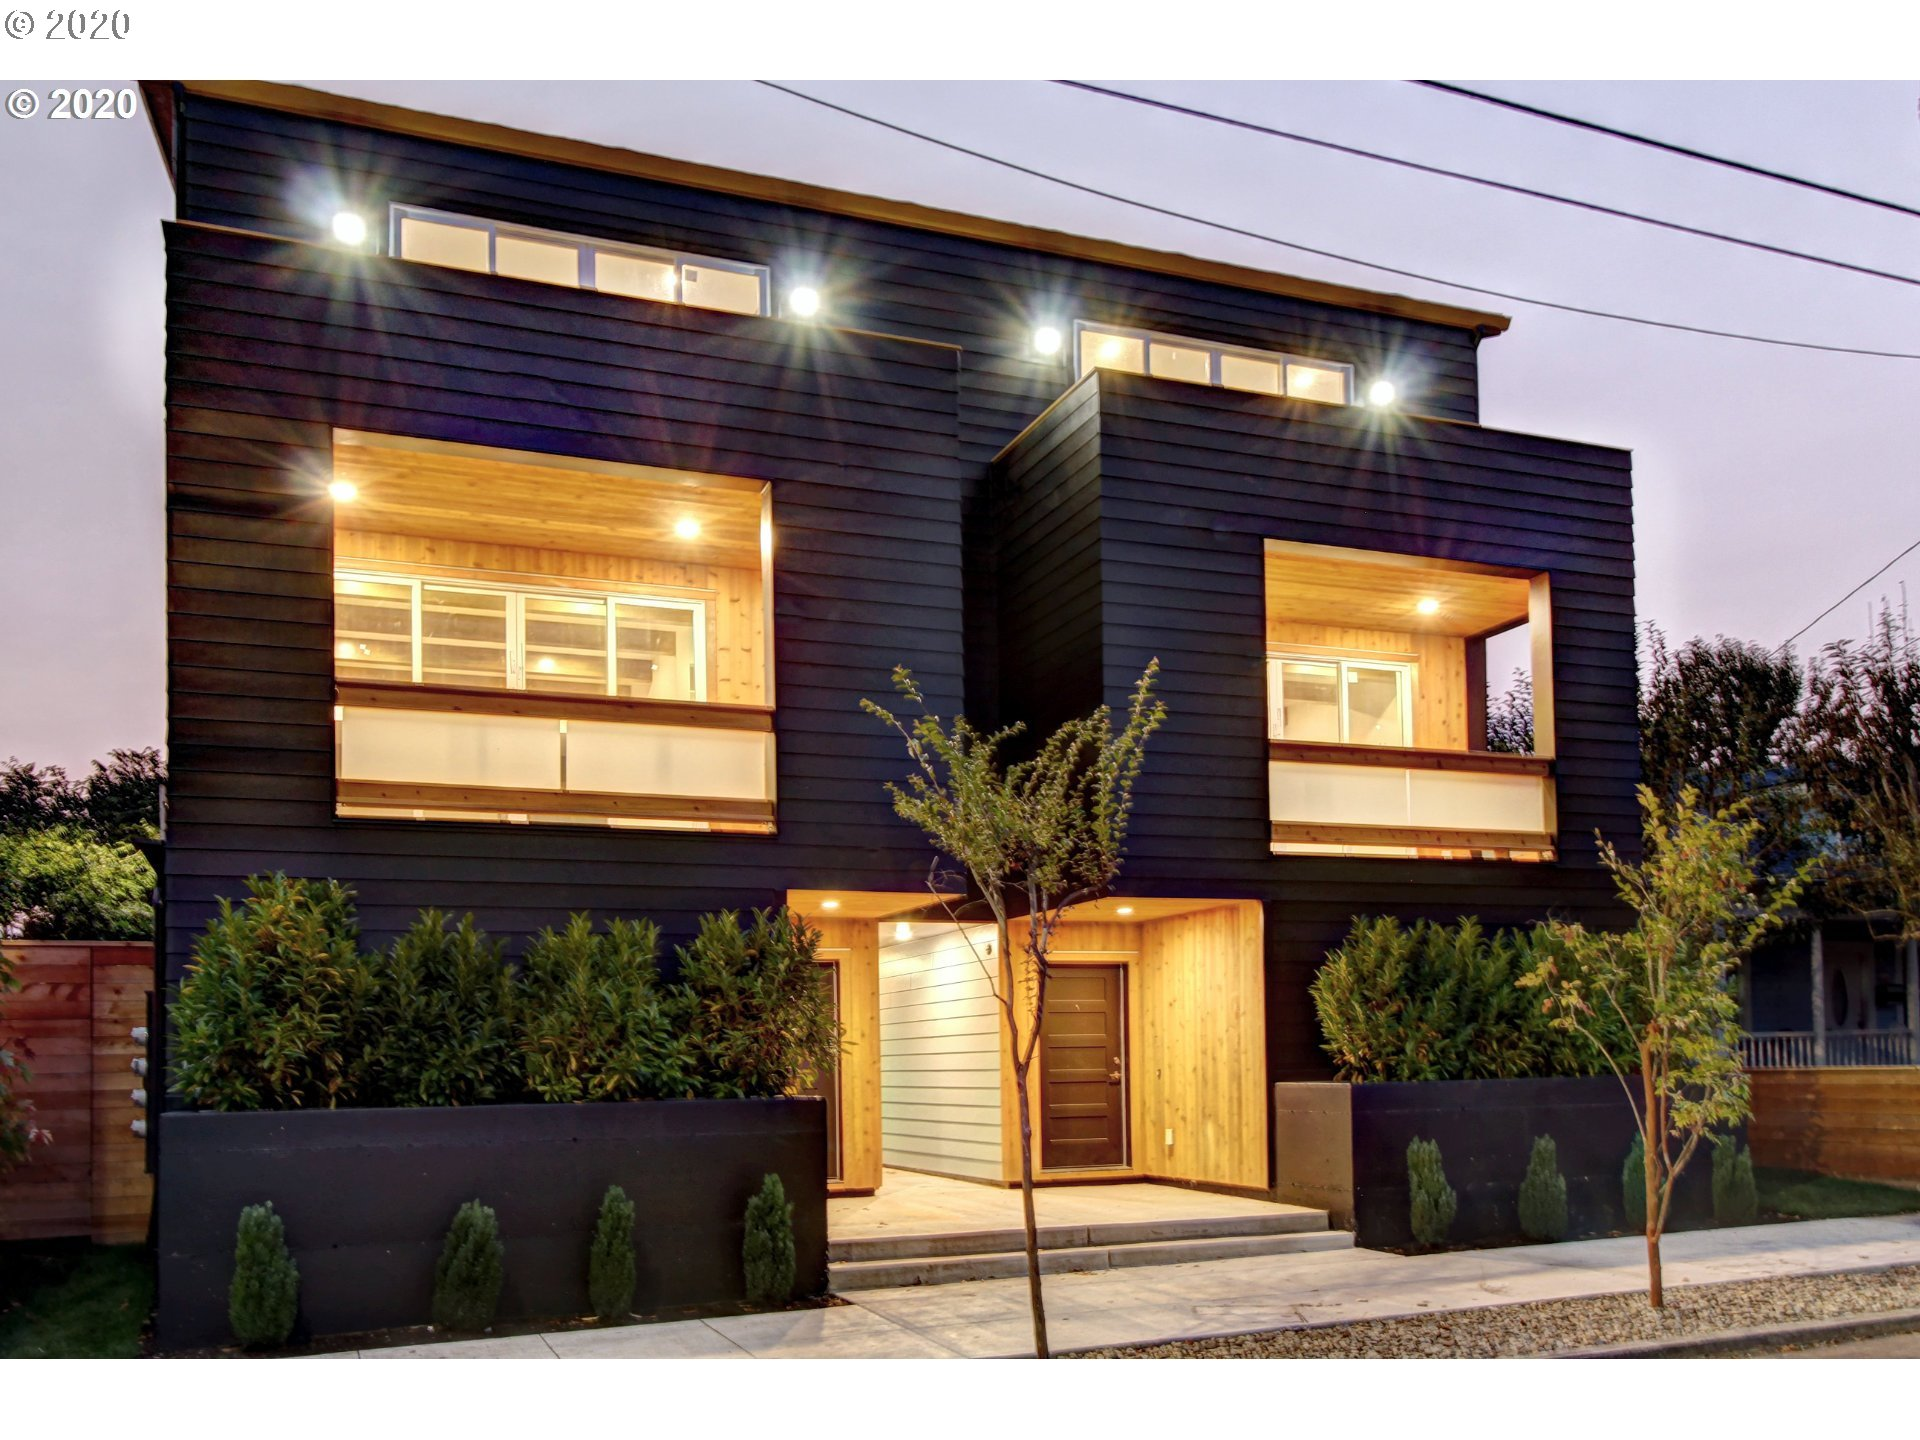 Stunning architecture kitty-corner from New Seasons with a walk score of 95. Tall ceilings, multiple living rooms, decks on all 3 levels, bedrooms that all fit king beds & dressers. This labor of love by the designer abounds in detail like smooth-wall, custom closets, bedroom-level laundry & EV charging. Every room was designed for furnishing with no wasted space. The ground level and location are equally perfect for work, family, or recreation. This spectacular design truly has the x-factor.